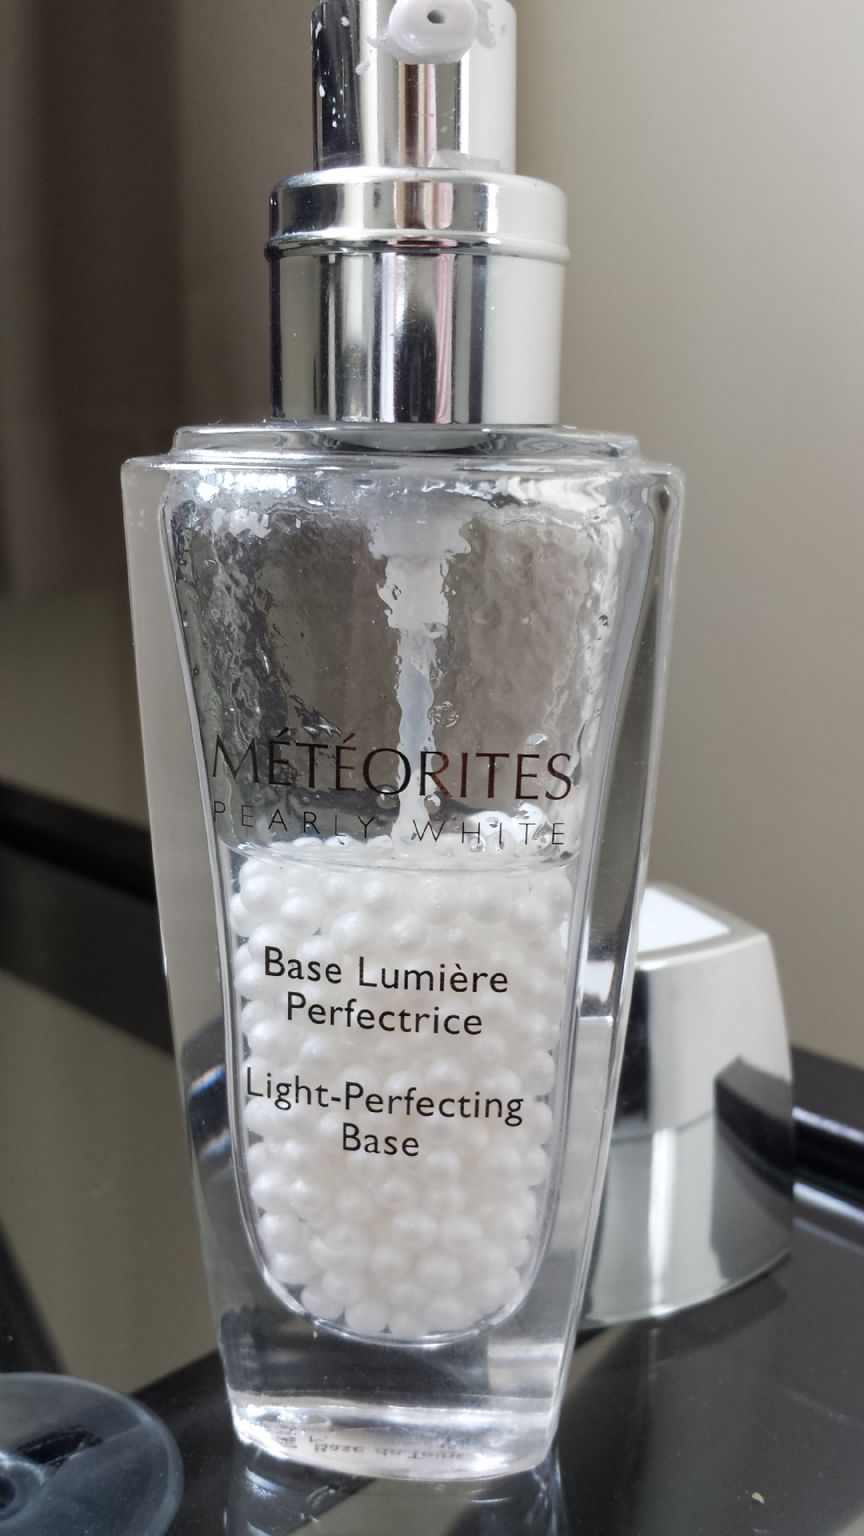 Guerlain meteorites pearly white light perfecting base